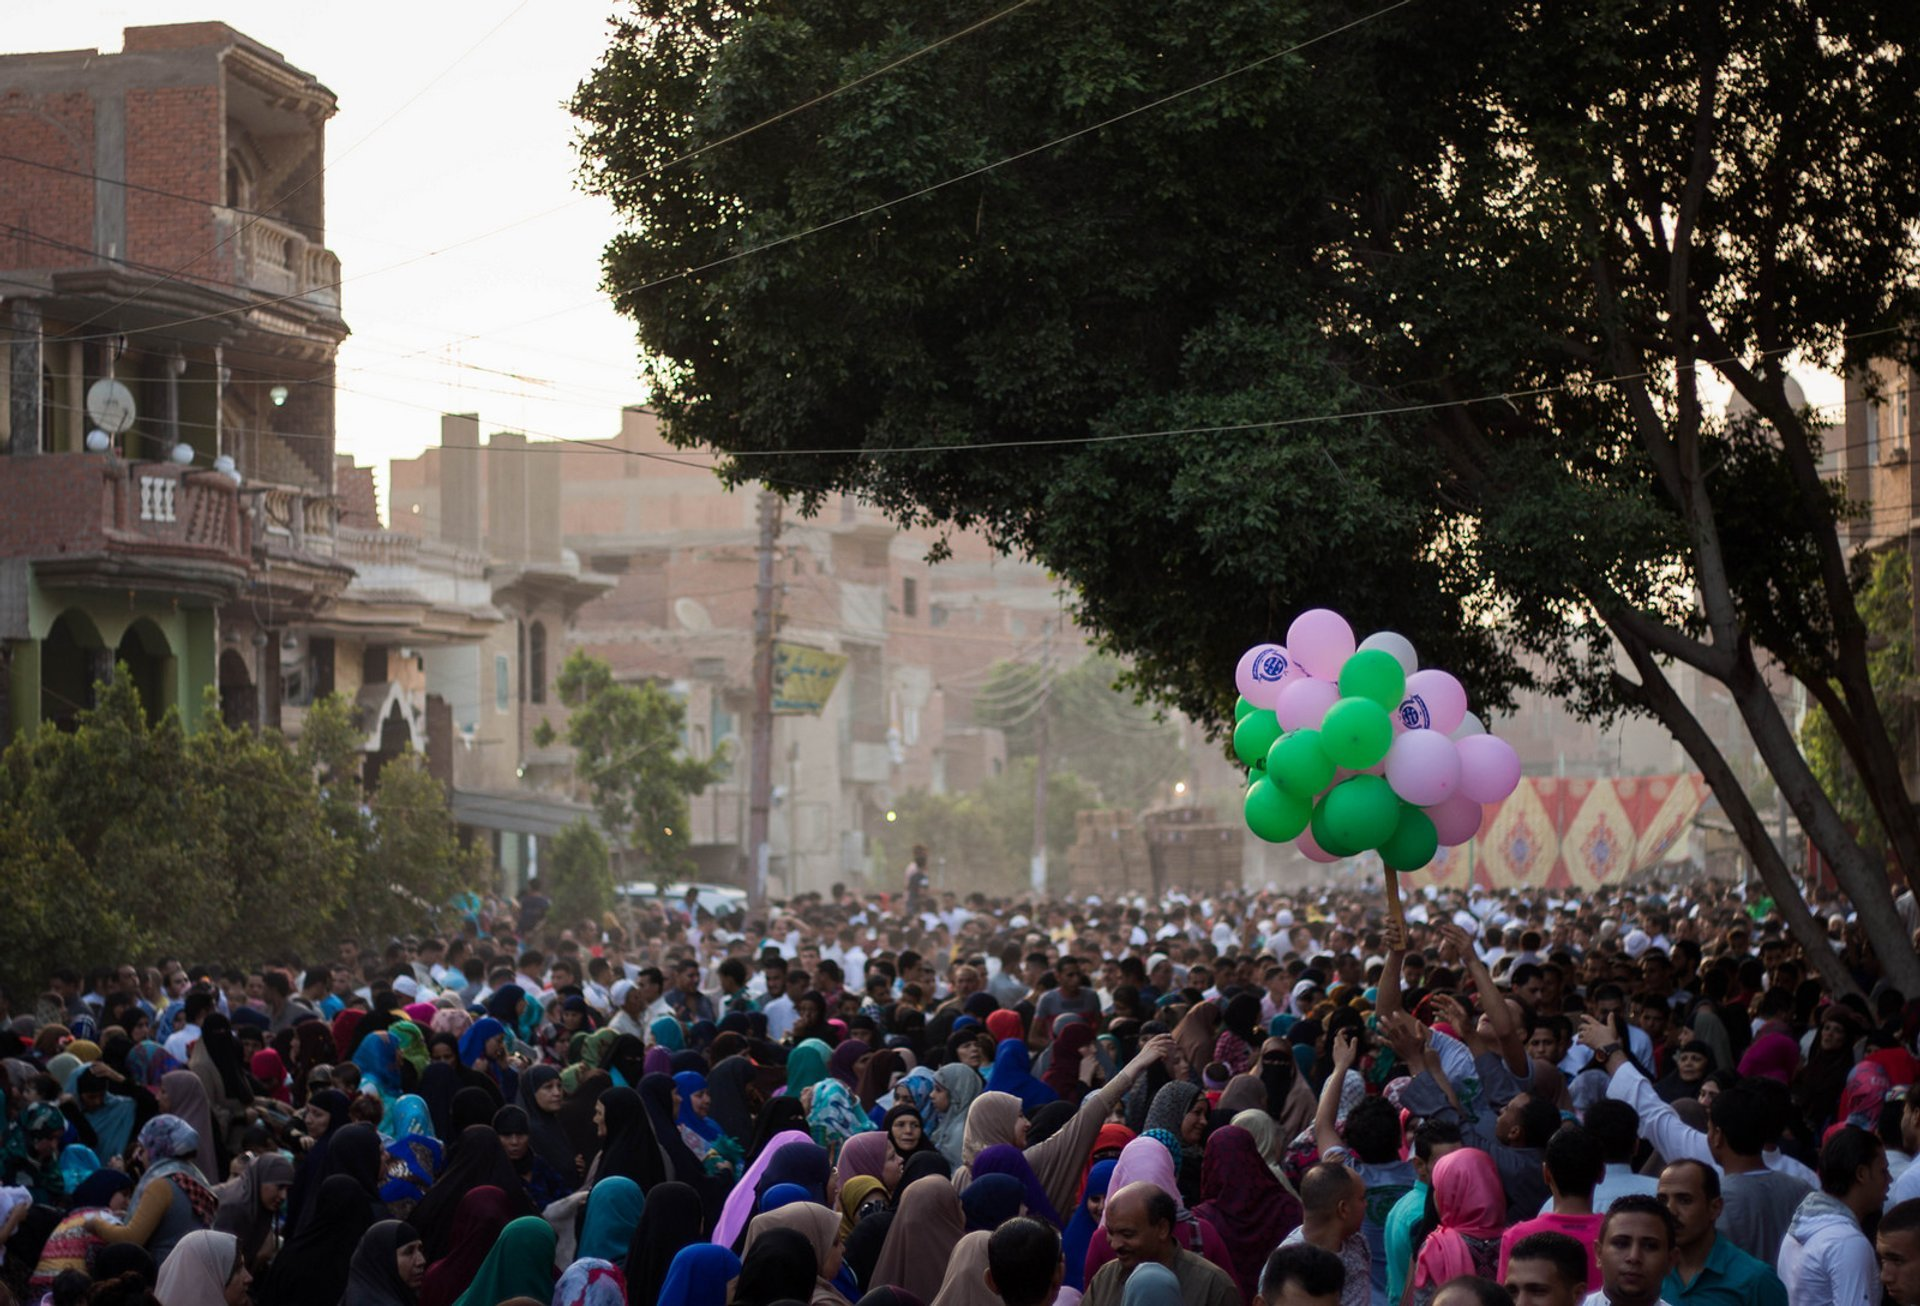 Egyptian Muslims attend Eid Al-Fitr prayers in the early morning to mark the end of the holy fasting month of Ramdan 2020